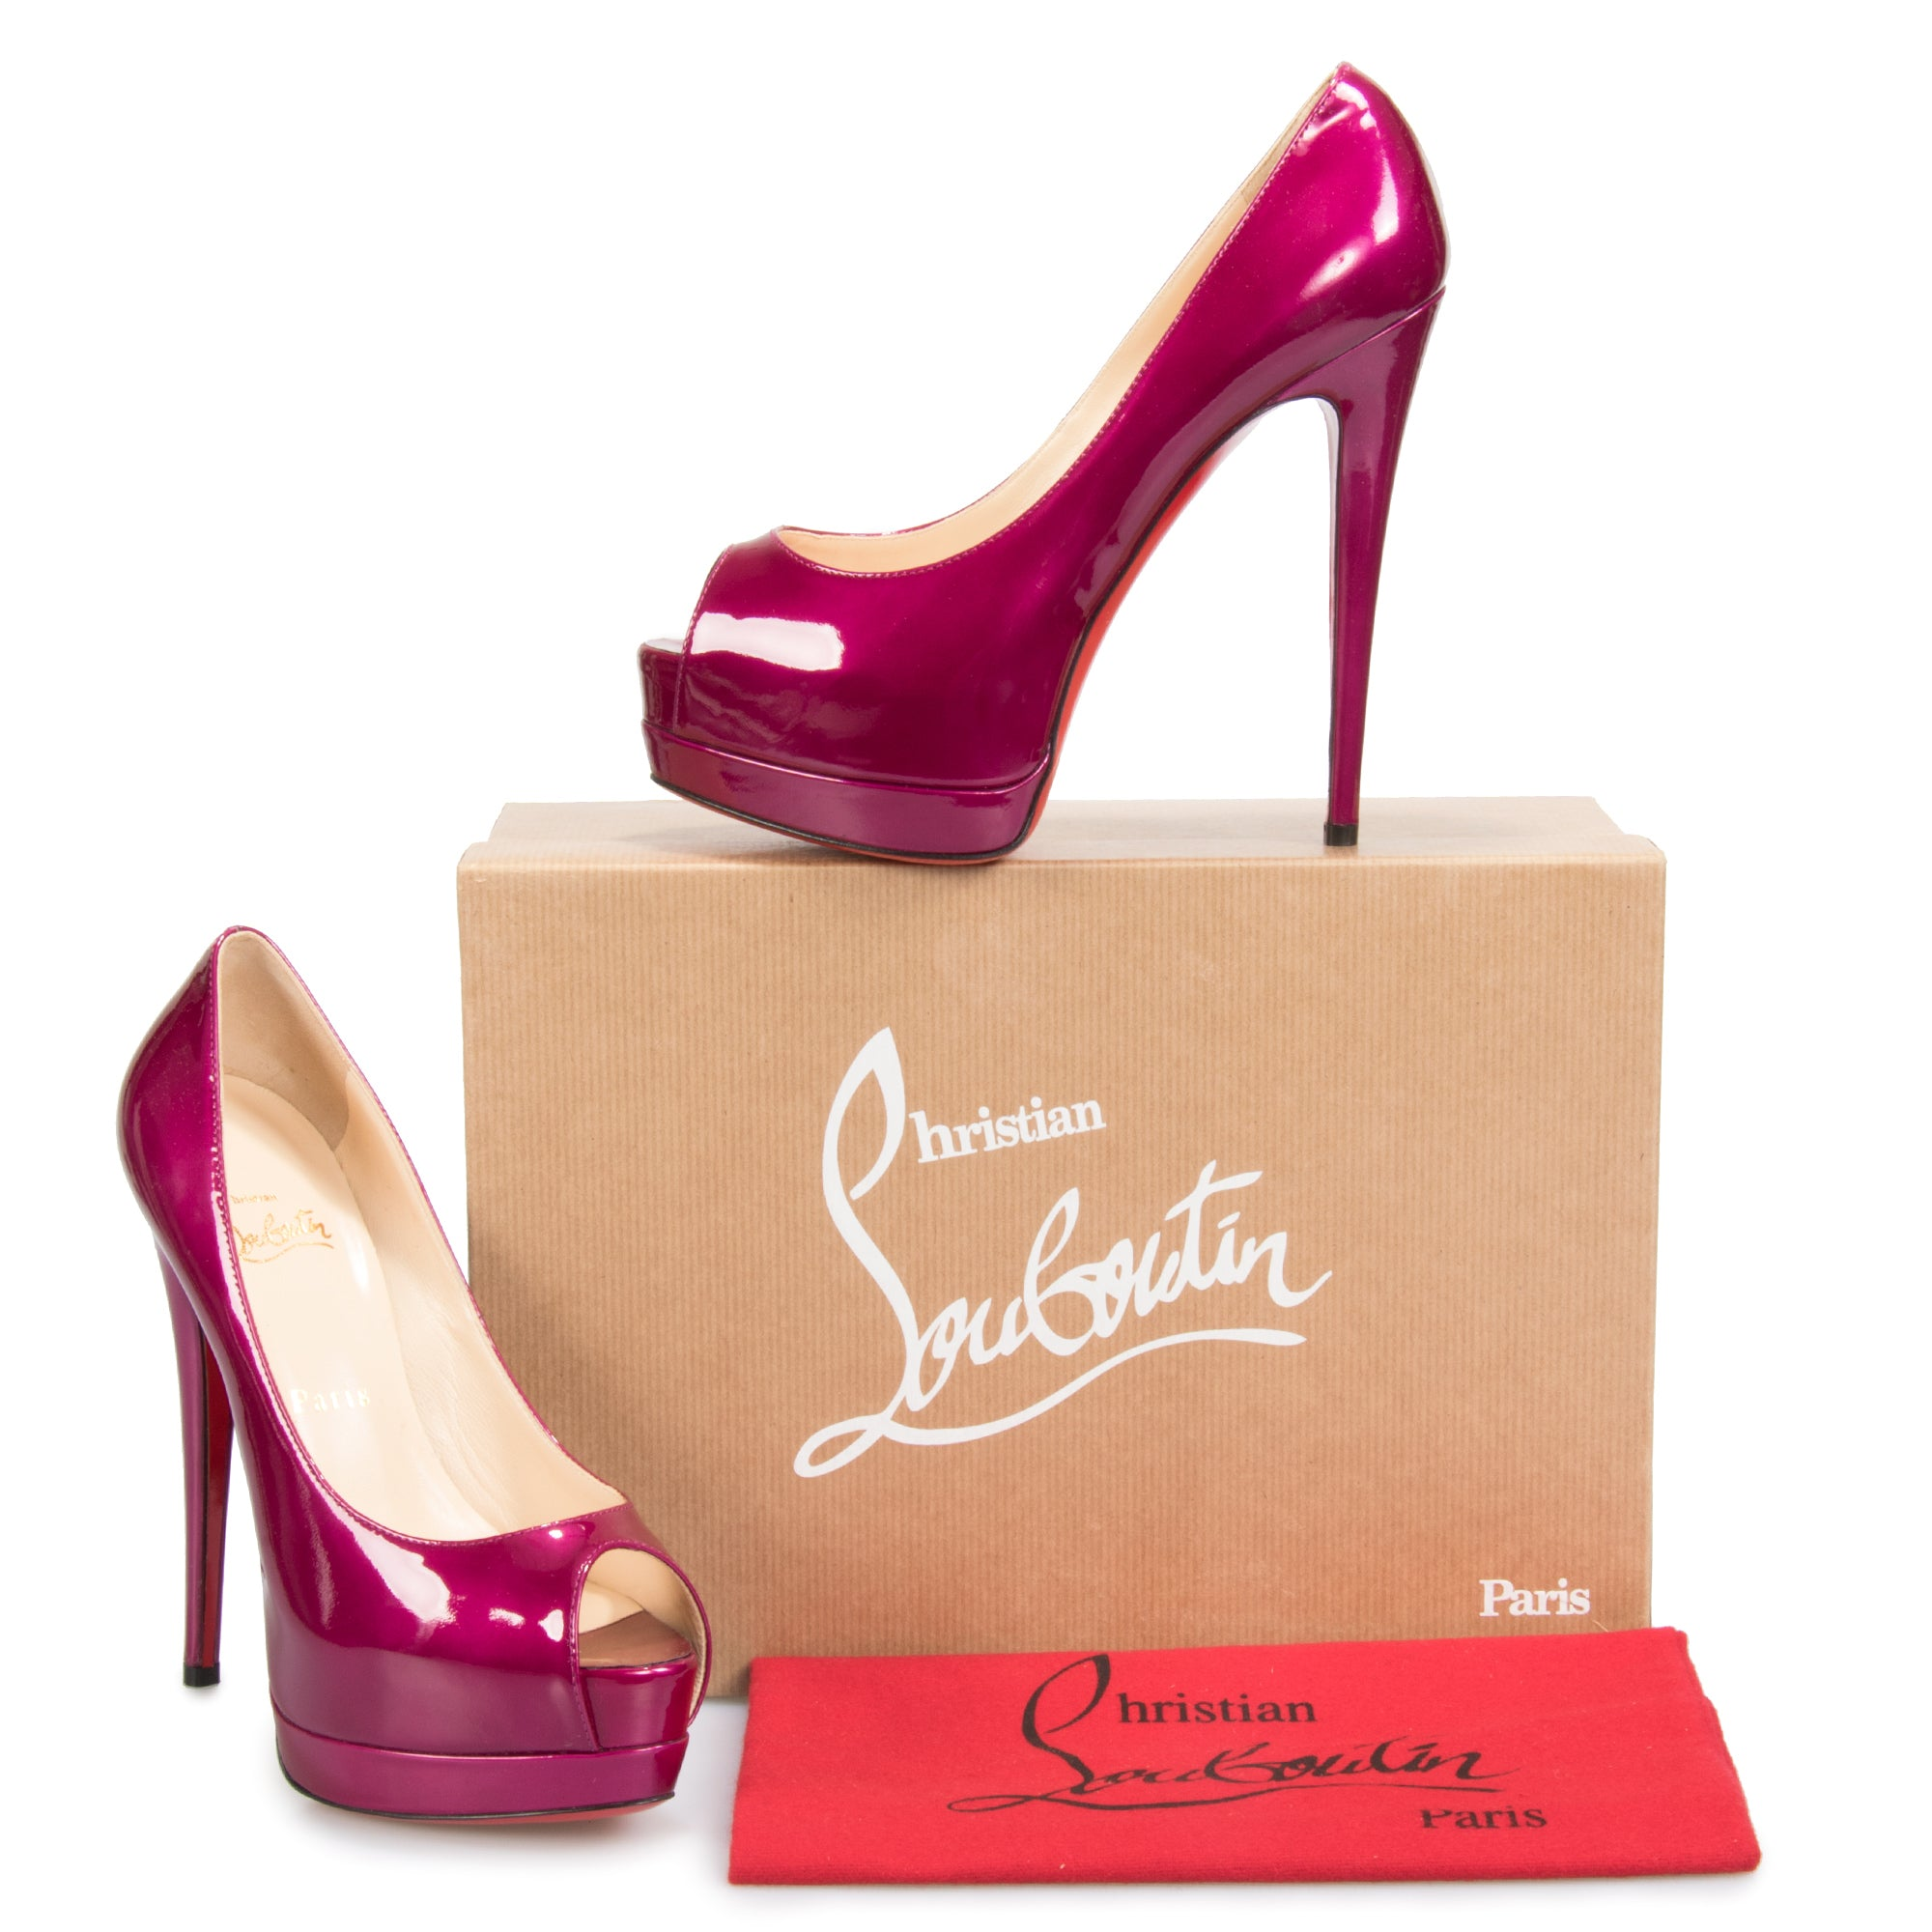 Christian Louboutin Palais Royal Magenta Patent Leather 120mm Platform Pump